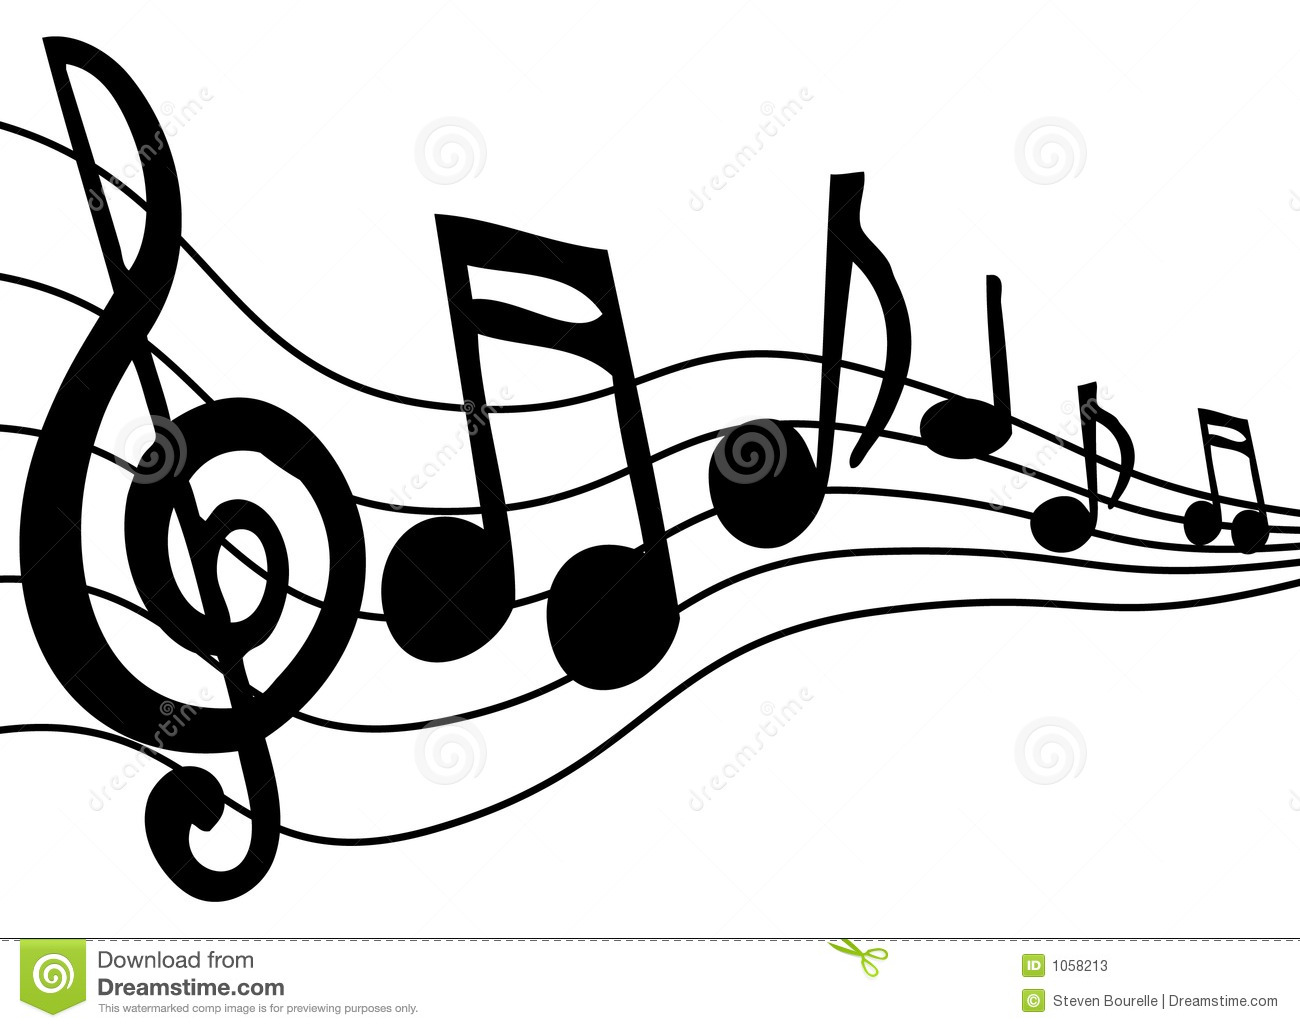 Super Music Notes stock vector. Image of classical, jazz, style - 1058213 ZO72